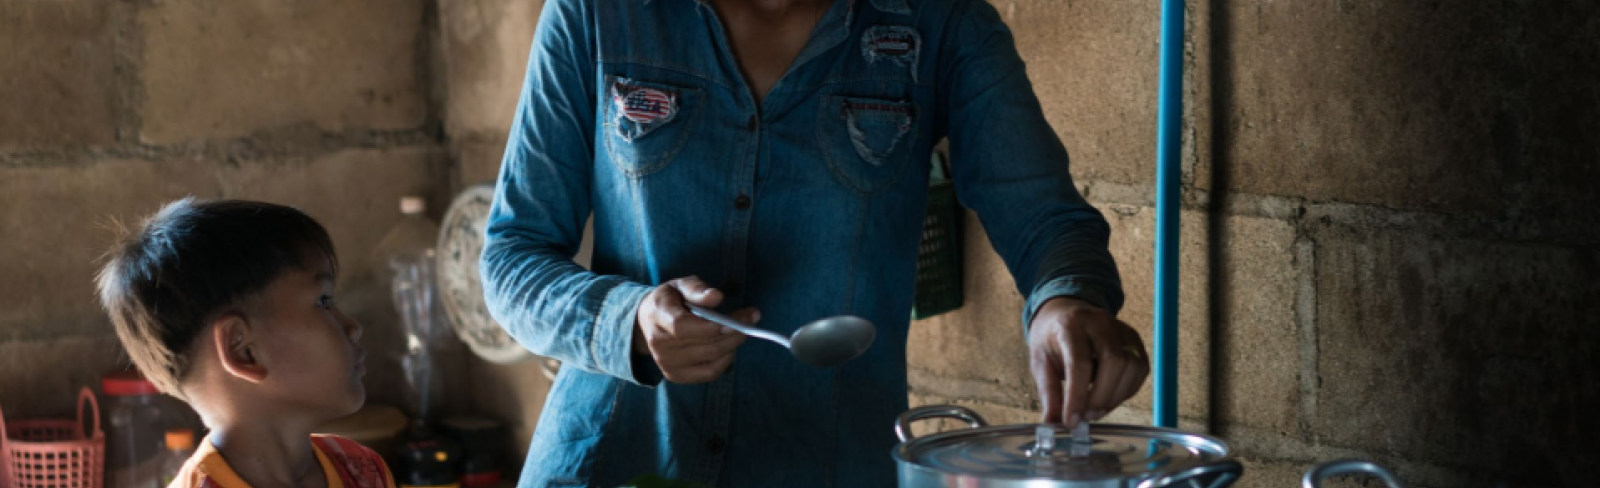 JOINT ESMAP & Ci-Dev | Quantifying and Measuring Climate, Health and Gender Co-Benefits from Clean Cooking Interventions:  Methodologies Review | August 6, 2020